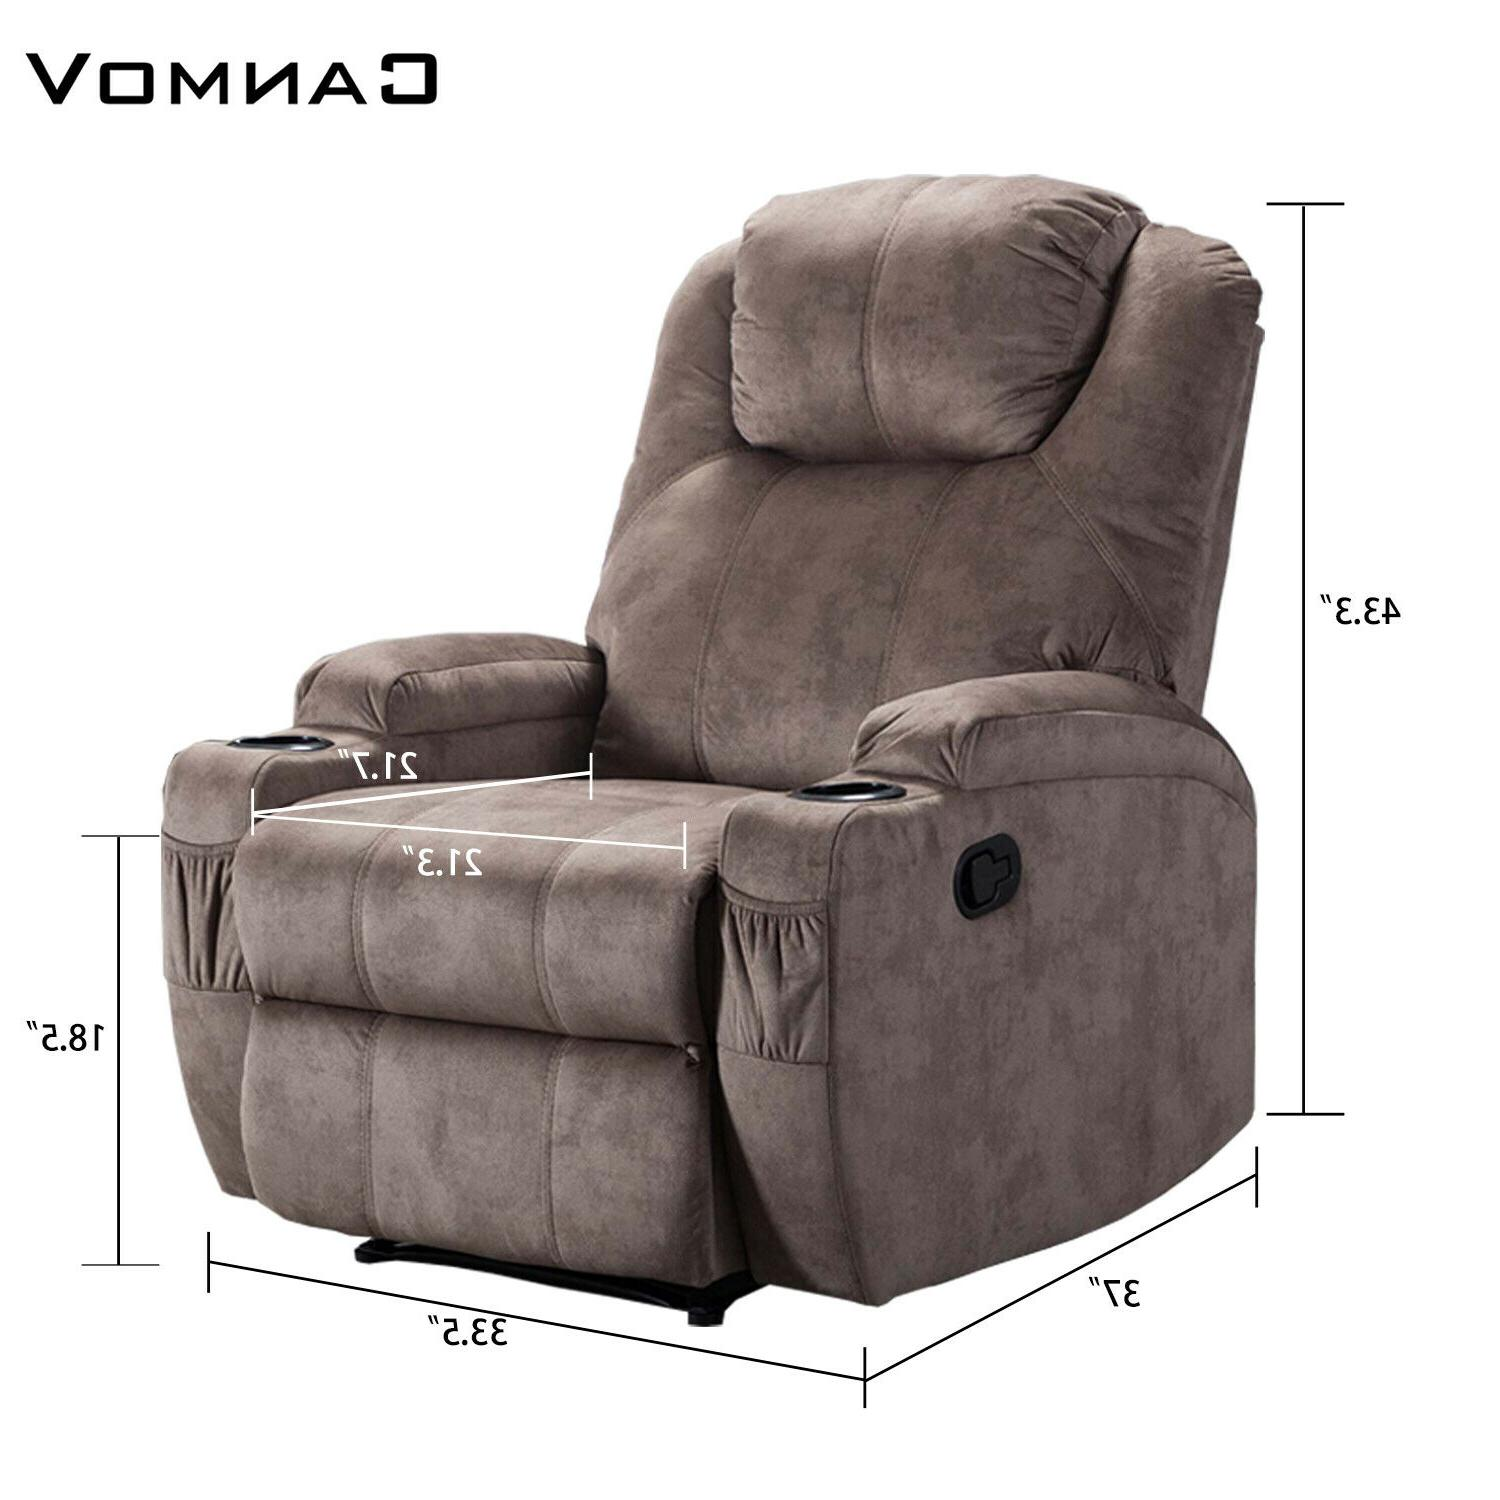 Microfiber Chair Sofa w/Cup Holders Boy Style Home Theater